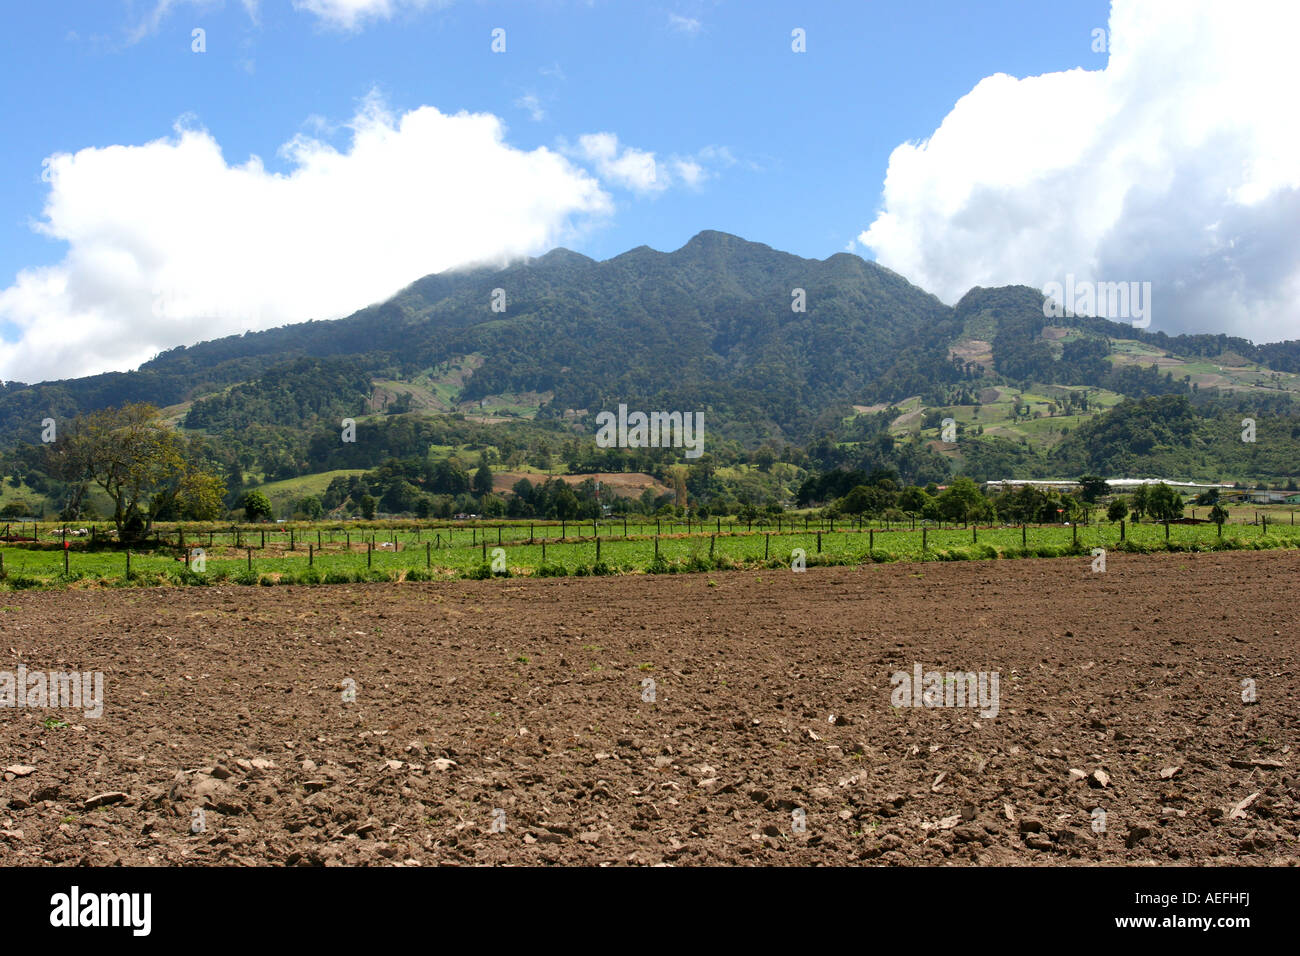 Baru volcano in the province of Chiriqui, Panama.  It is the highest point in the country. - Stock Image